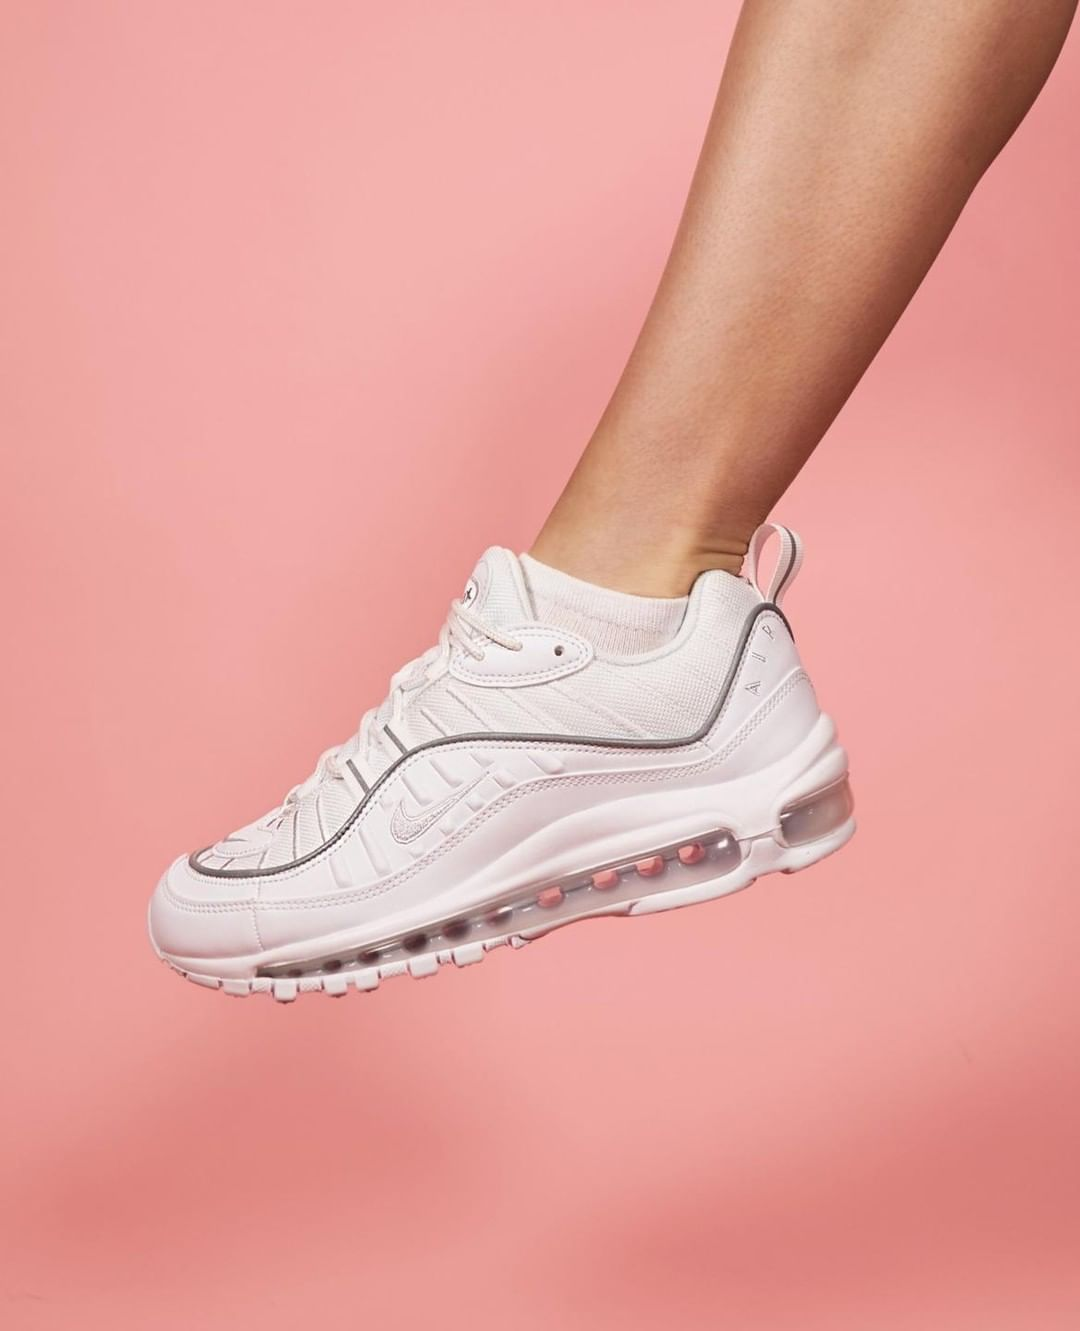 This Air Max 98 Is The Cleanest Yet Do You Know Someone Who Loves White Sneakers Stay Tuned To The Sole Womens For White Sneaker Sneakers Stylish Sneakers